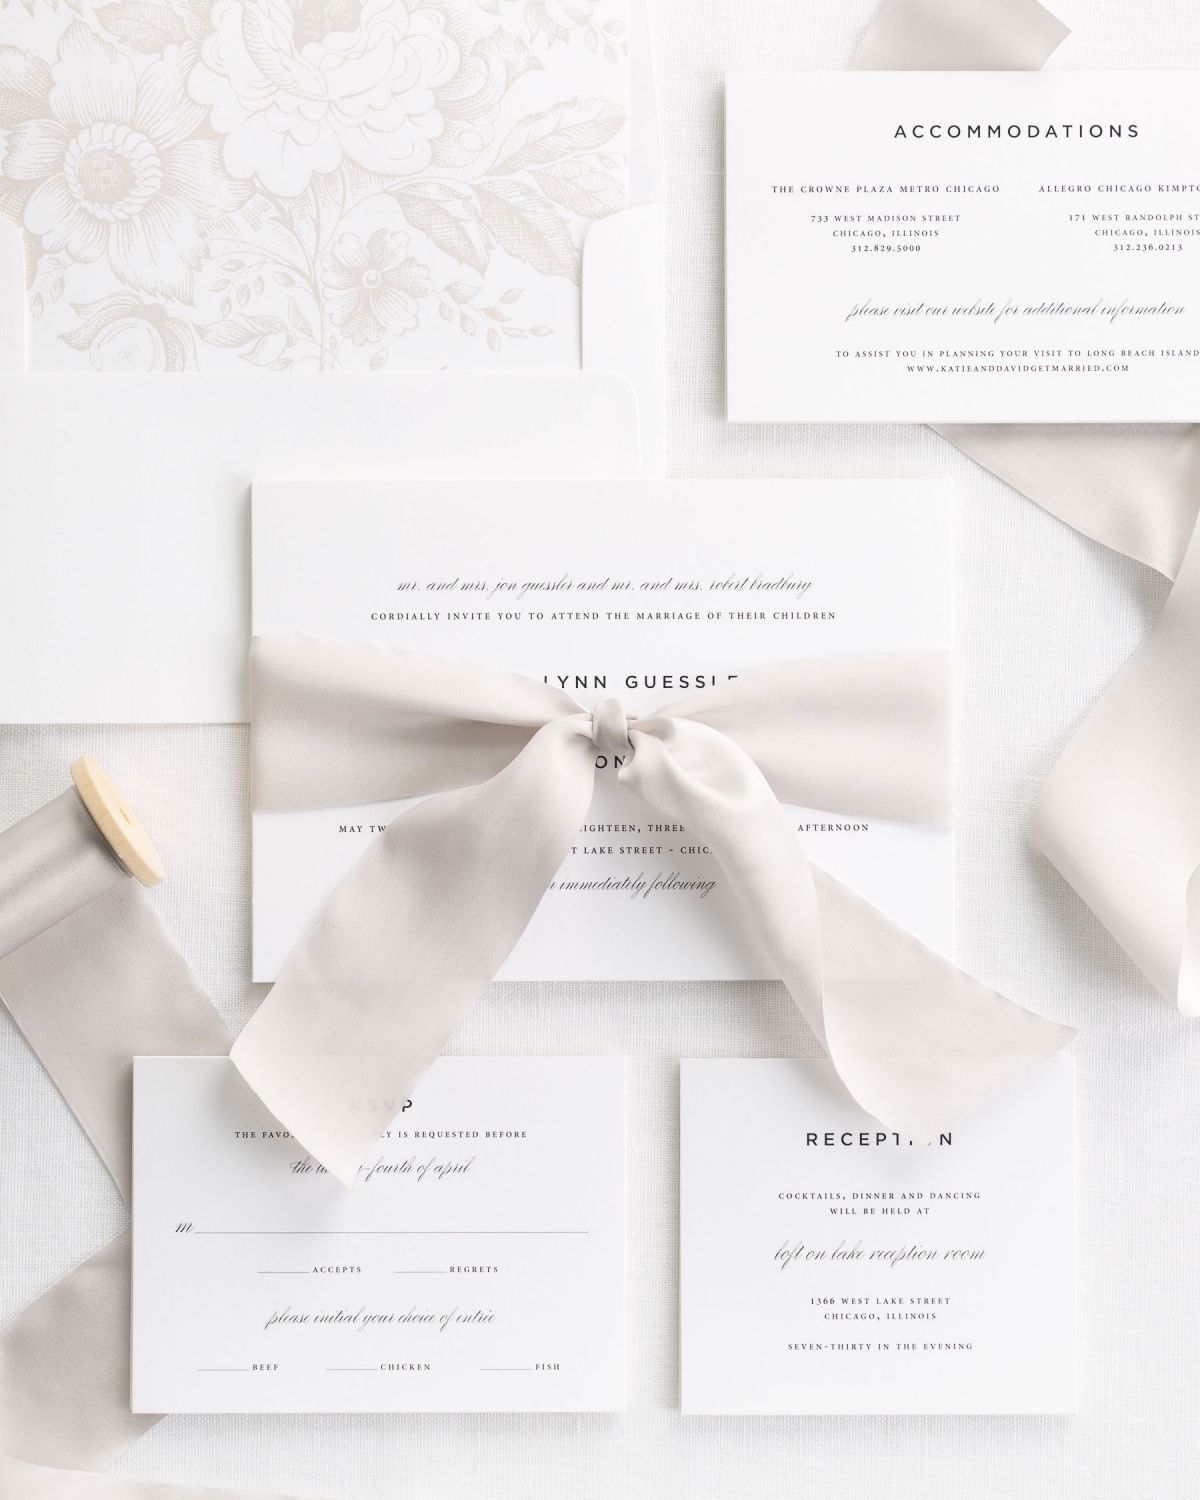 Complete Wedding Invitations with Mocha Ribbon and Enclosures